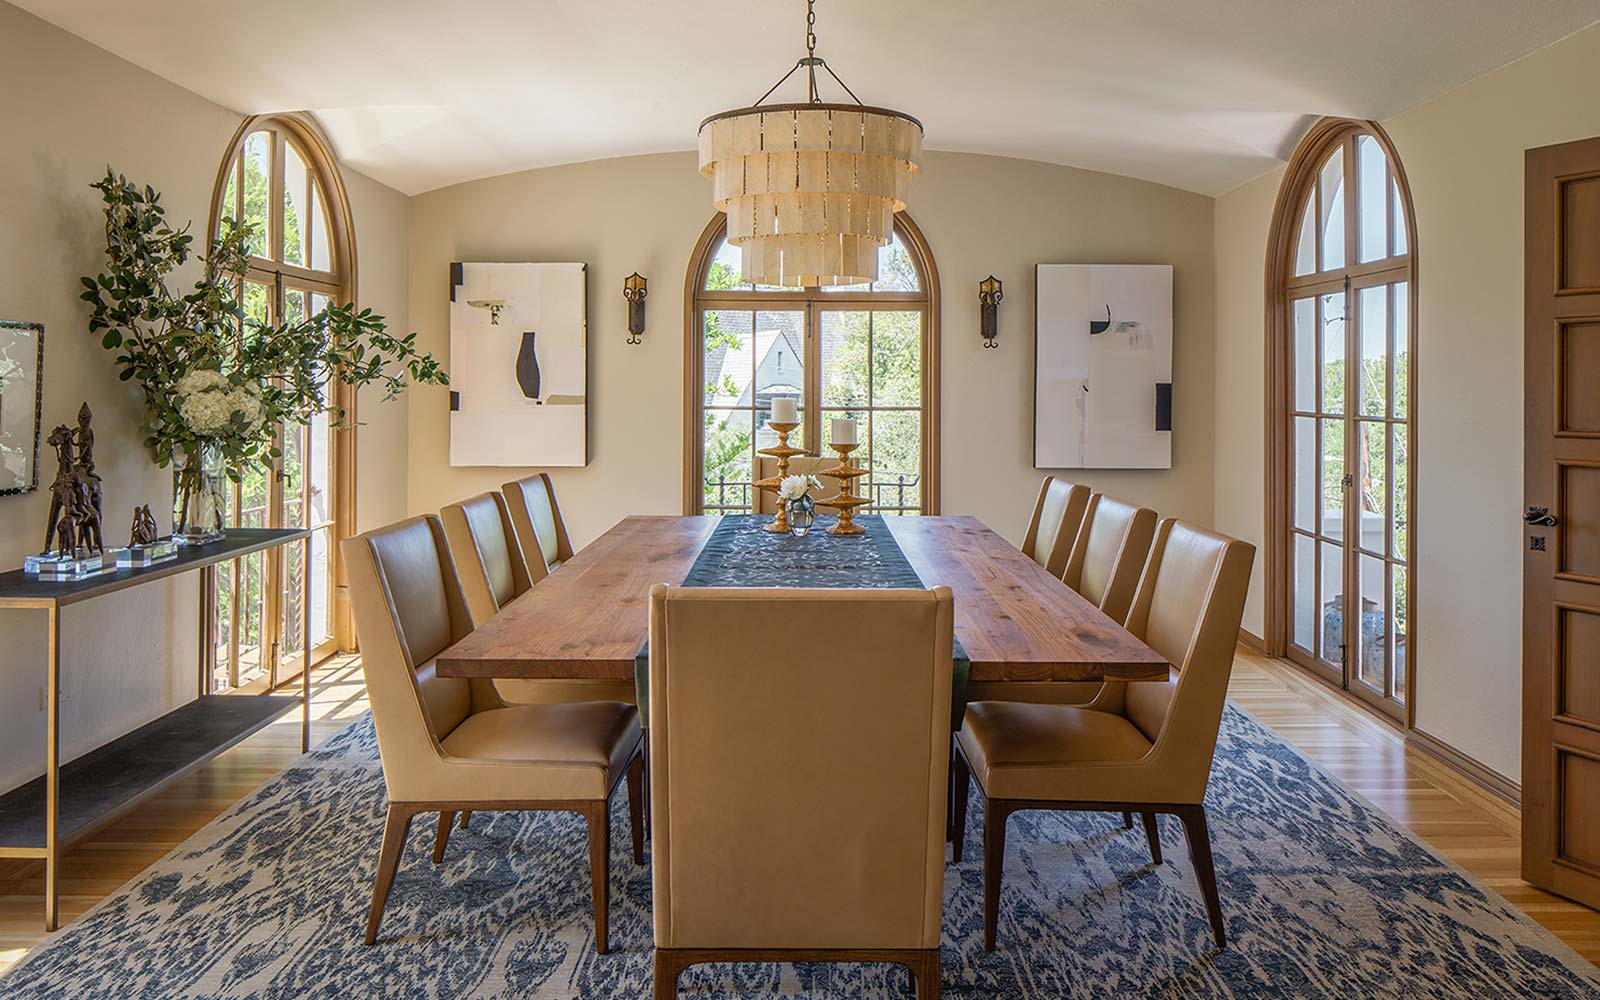 Spanish mediterranean chic interior design dining room, Palo Alto interior designer.